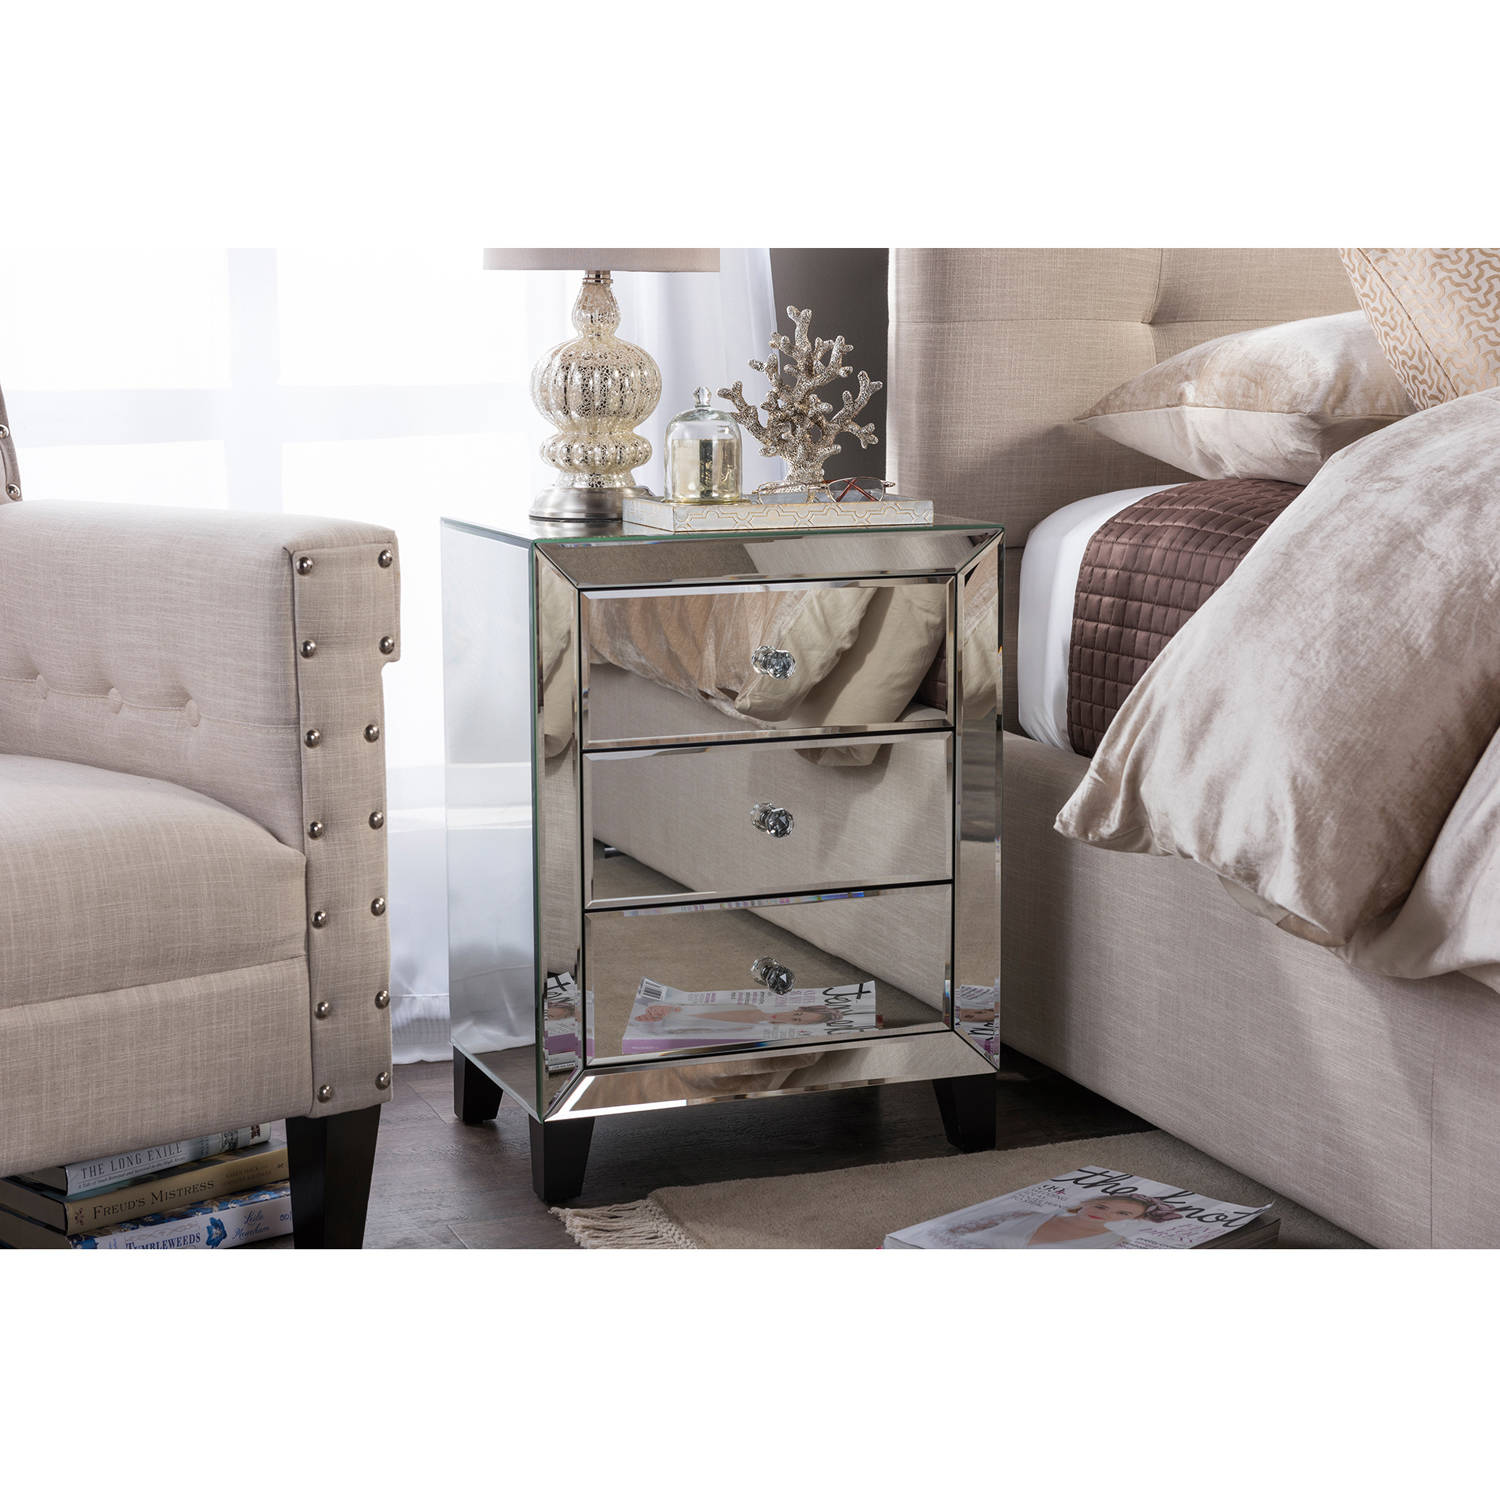 Baxton Studio Chevron Modern and Contemporary Hollywood Regency Glamour Style Mirrored 3-Drawers Nightstand Bedside... by Wholesale Interiors